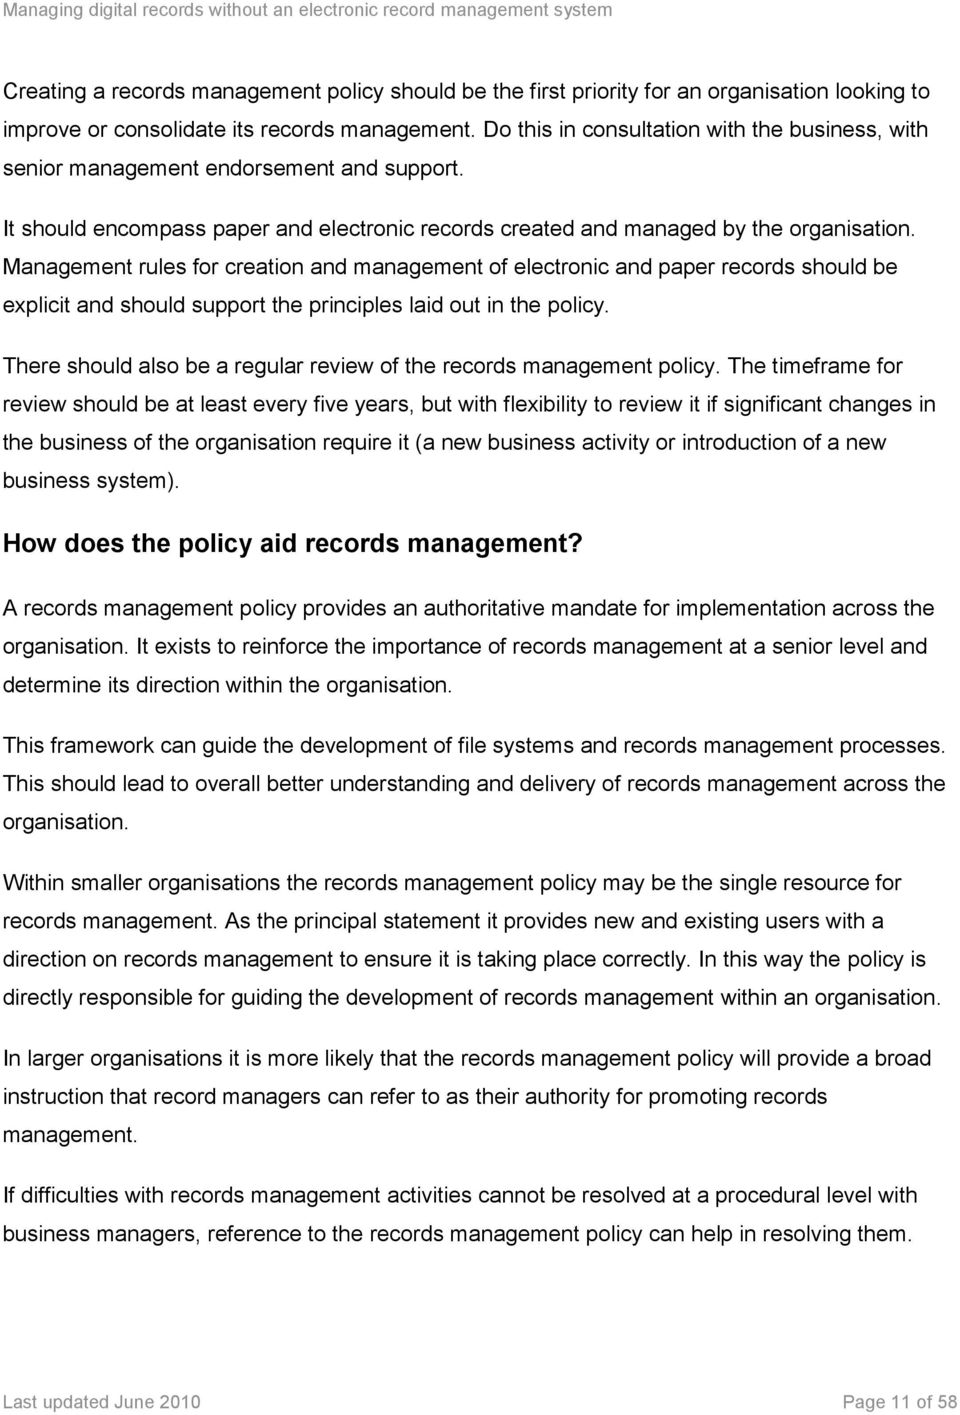 Management rules for creation and management of electronic and paper records should be explicit and should support the principles laid out in the policy.